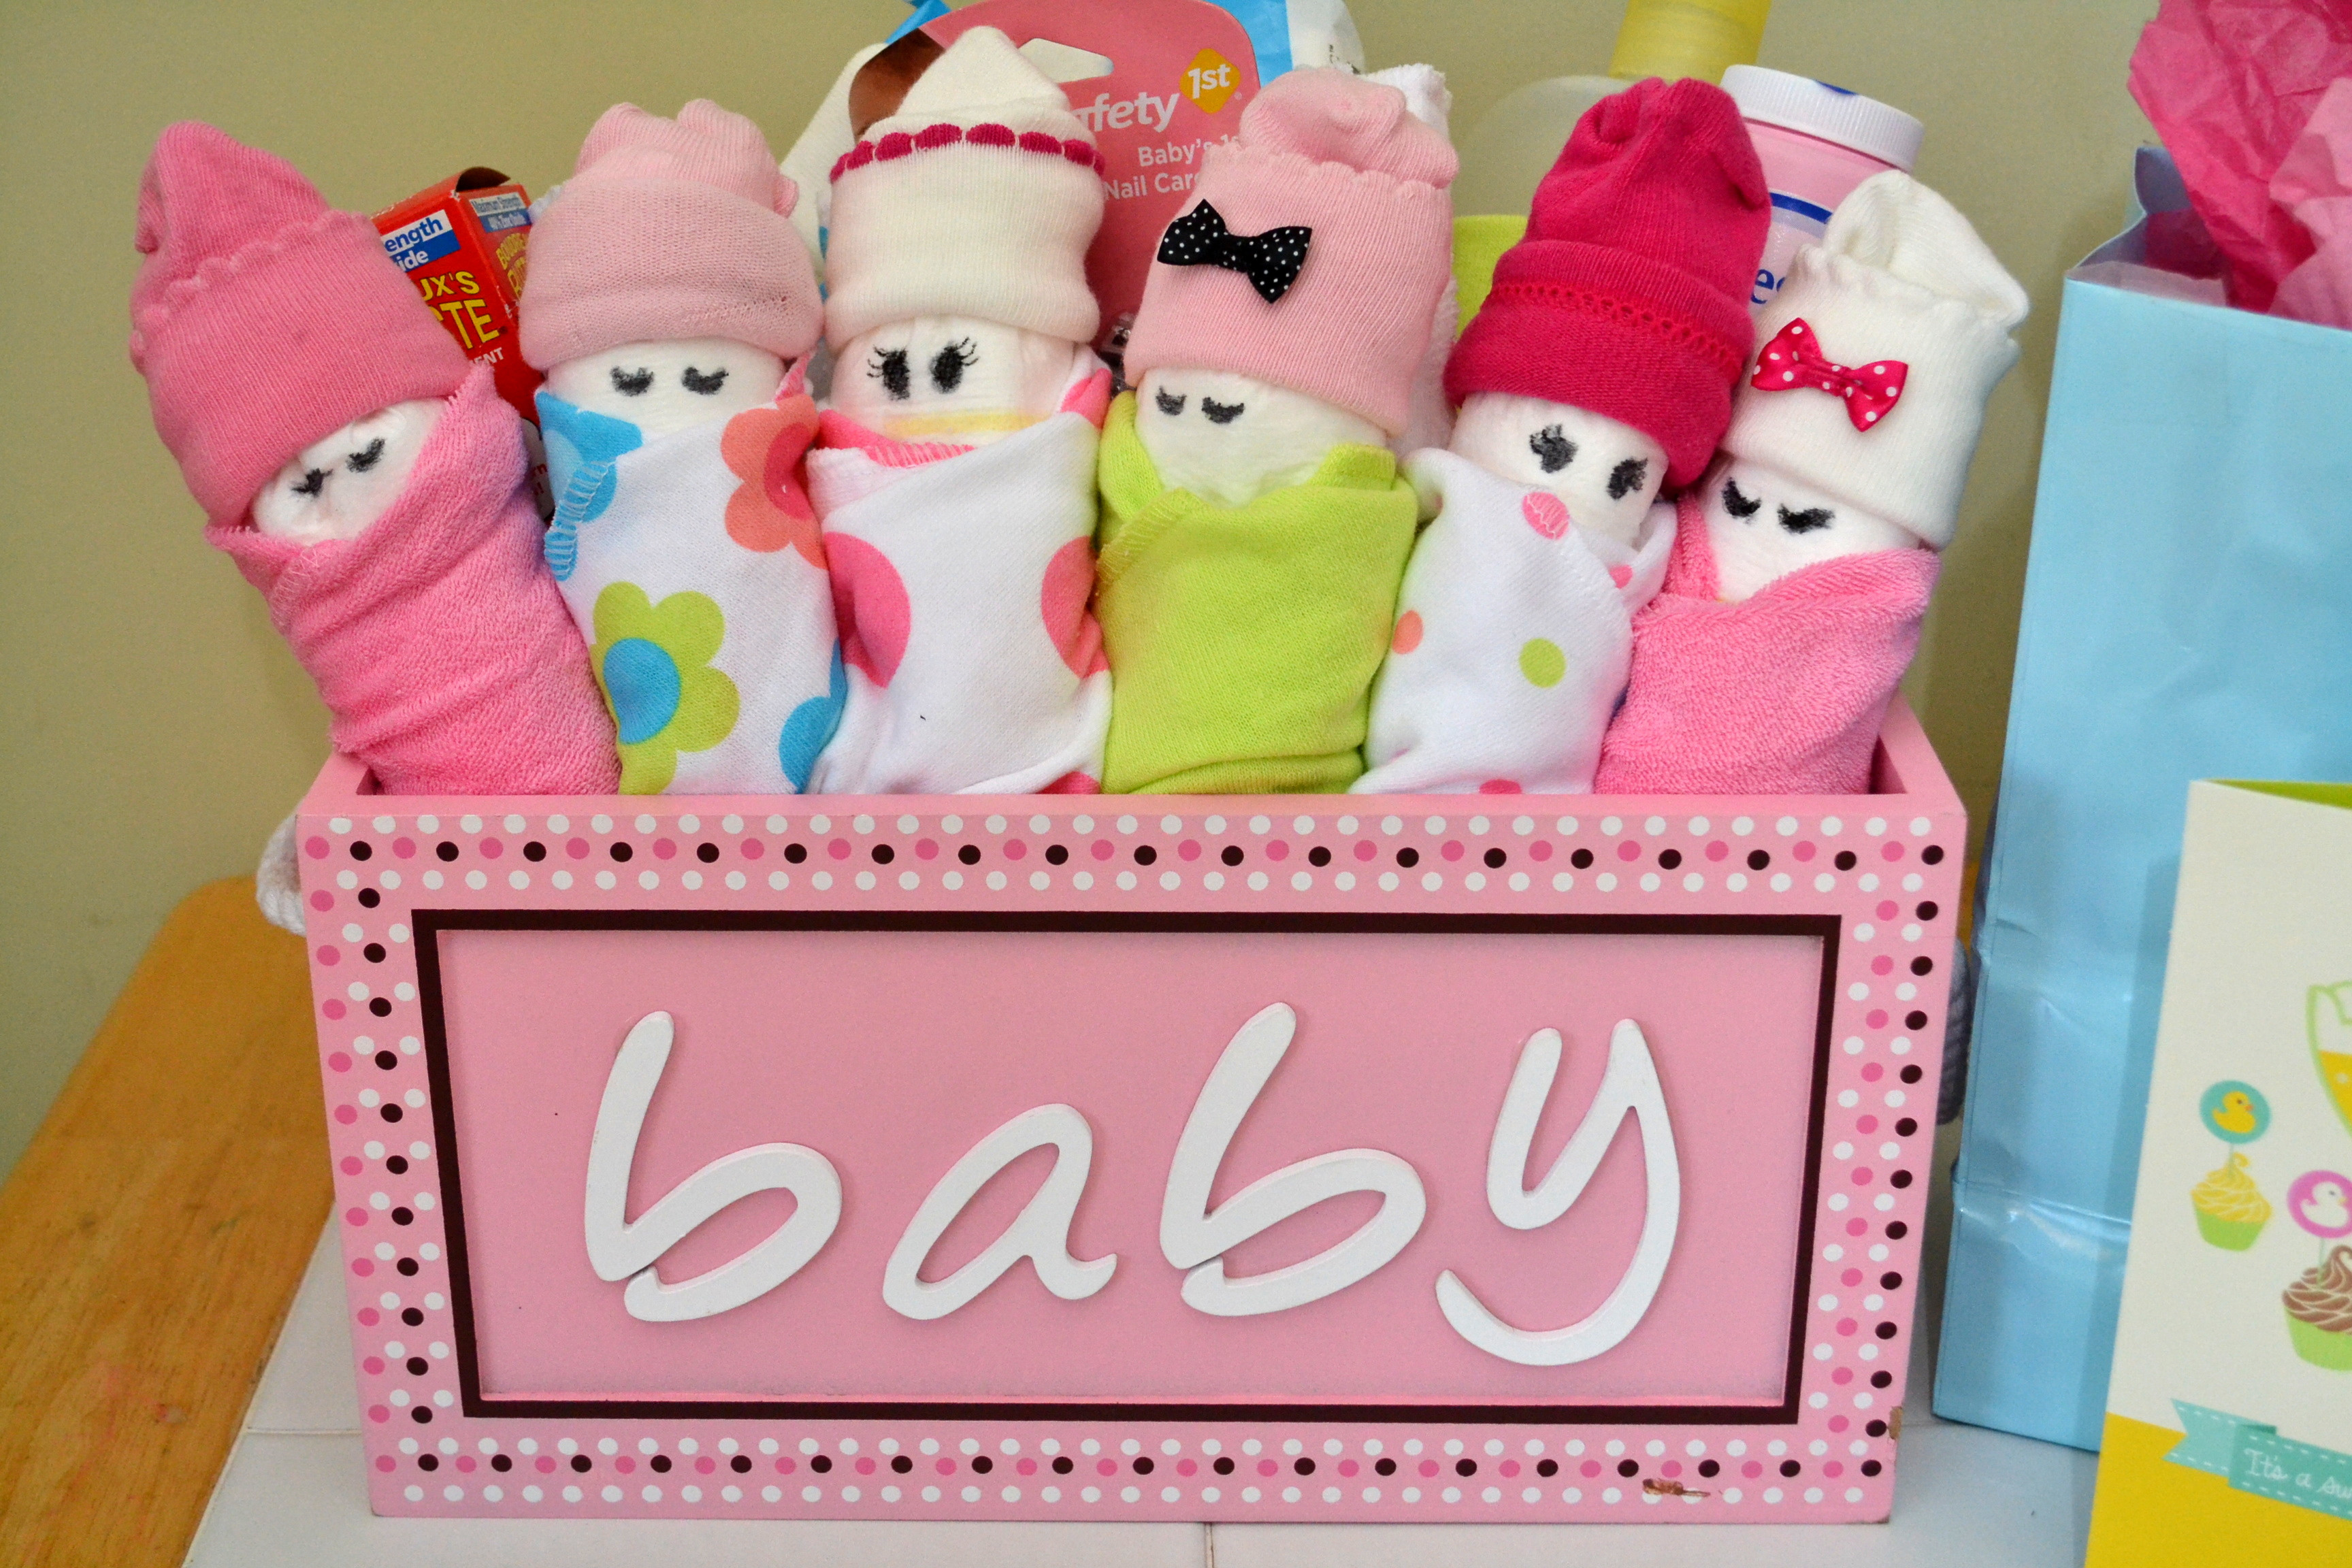 Gift Ideas For A Baby Shower  Essential Baby Shower Gifts & DIY Diaper Babies